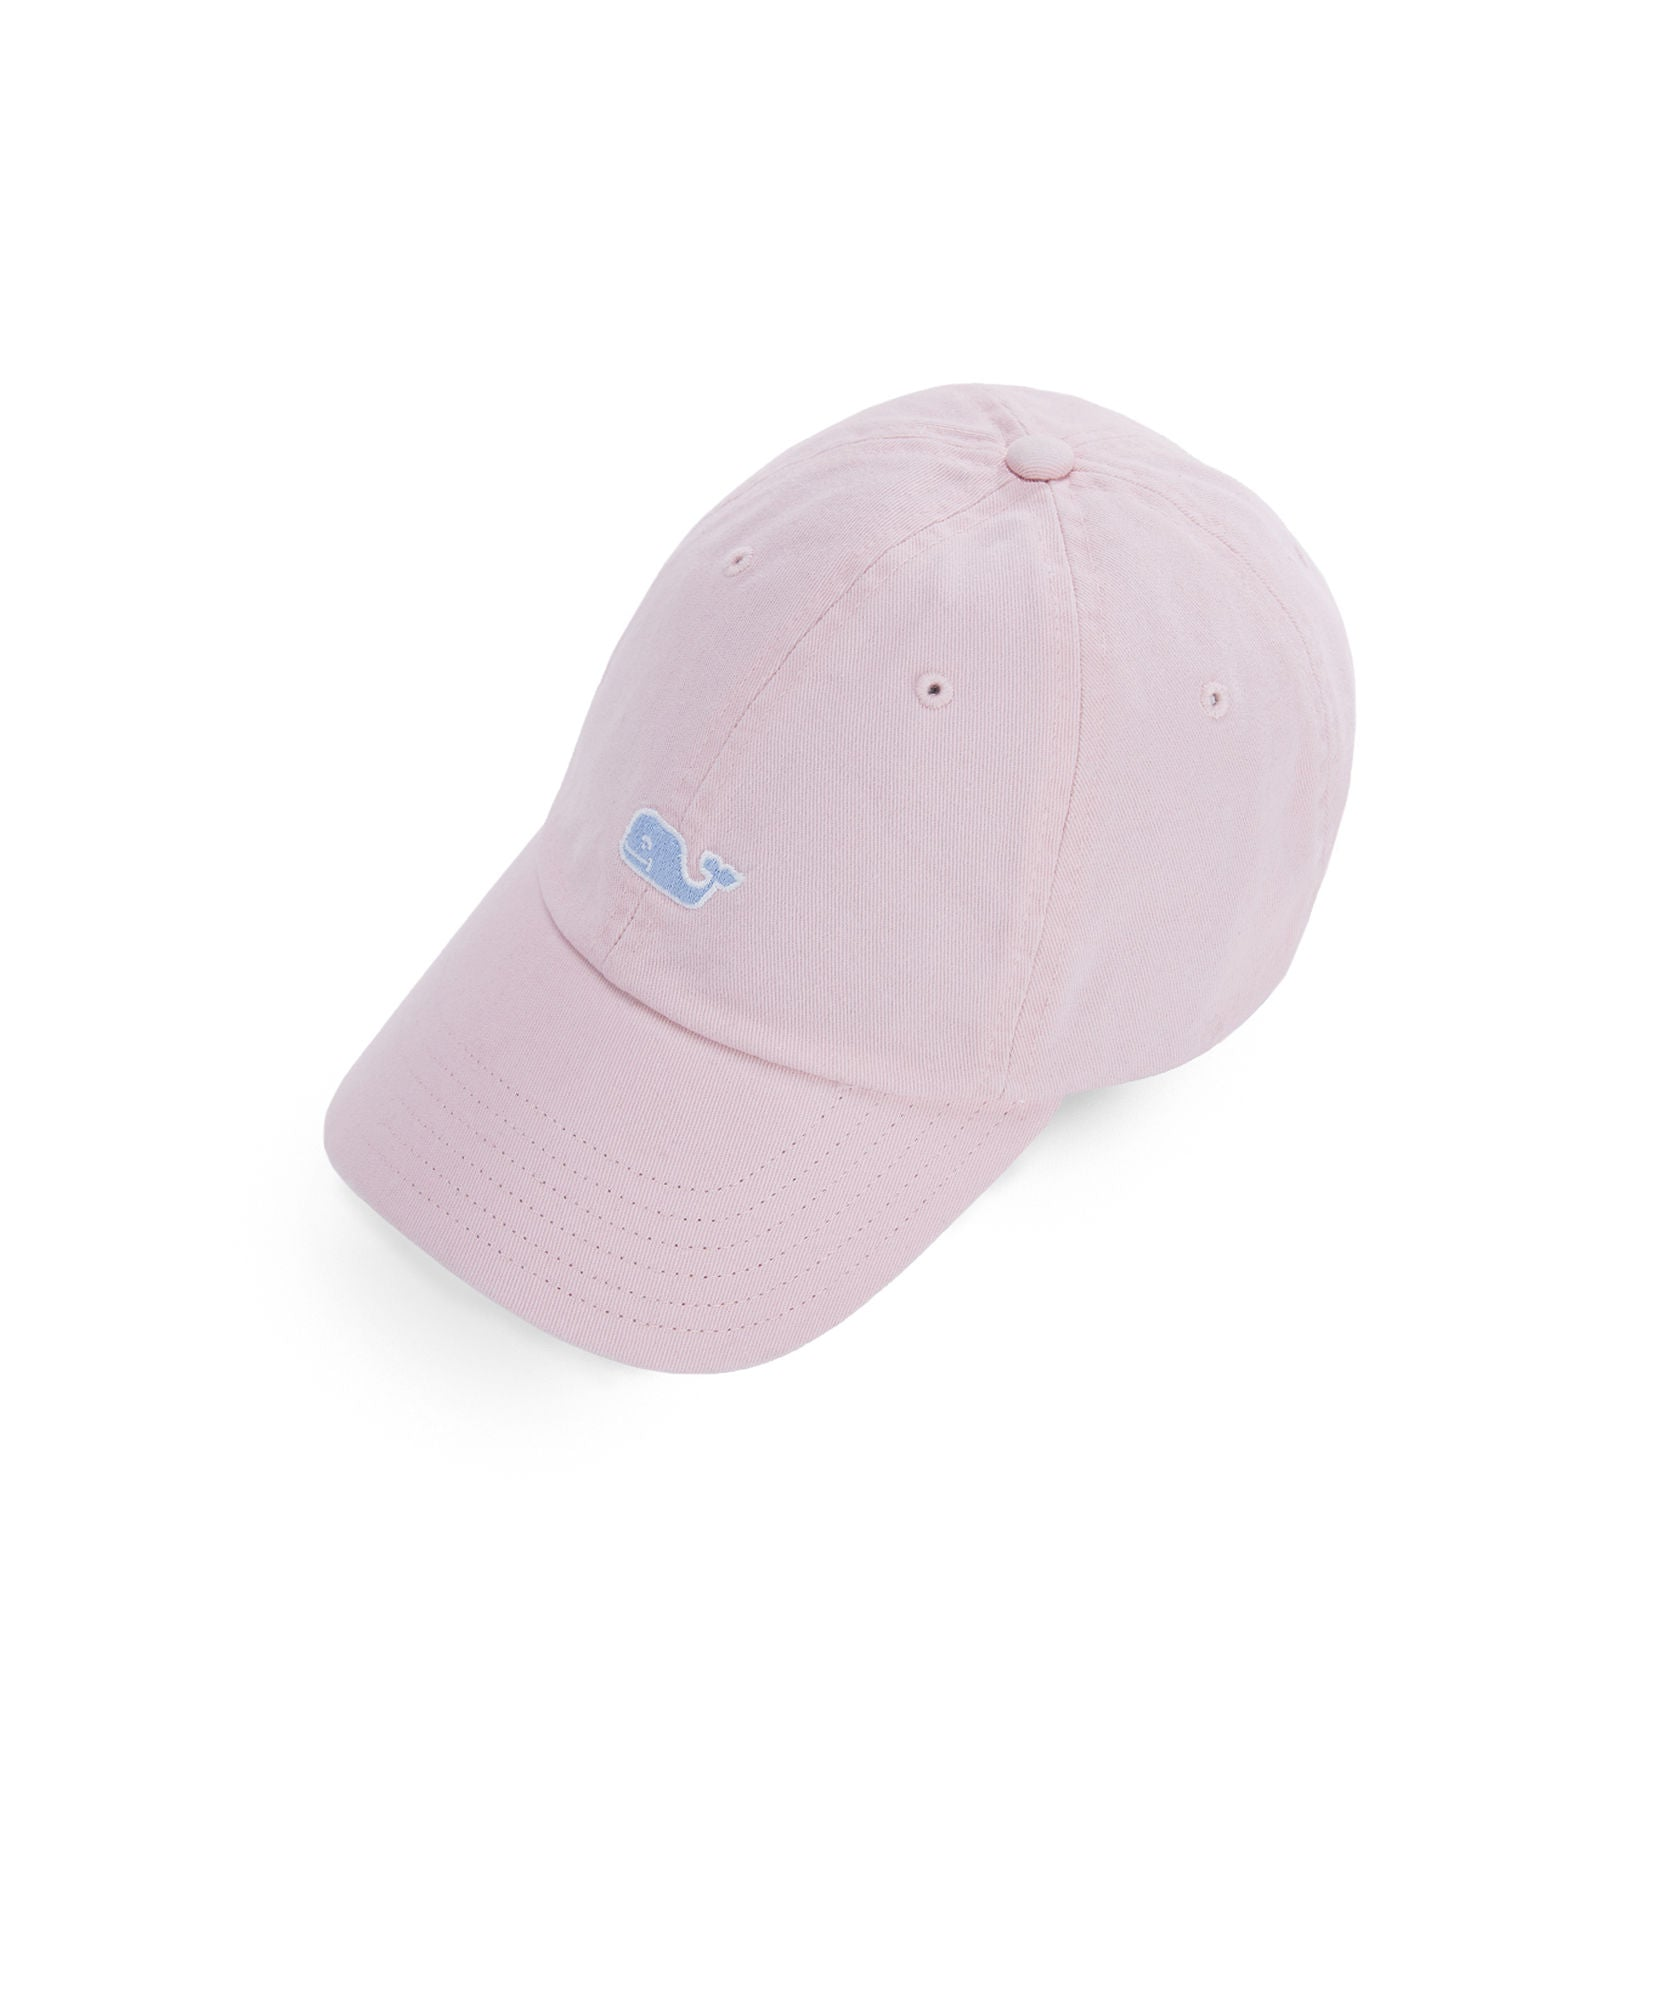 Vineyard Vines Garment Dyed Logo Leather Strap Baseball Hat - Flamingo b2ee7288d35b